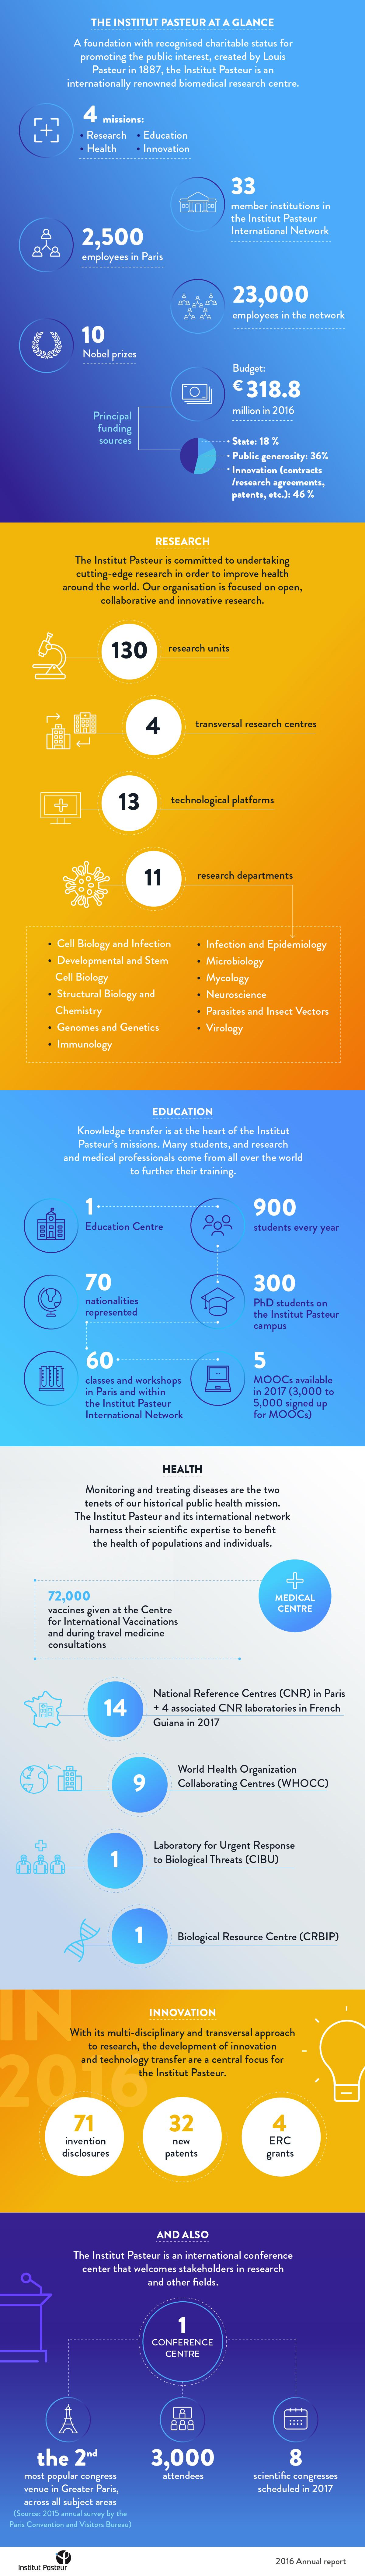 The Institut in numbers - Institut Pasteur